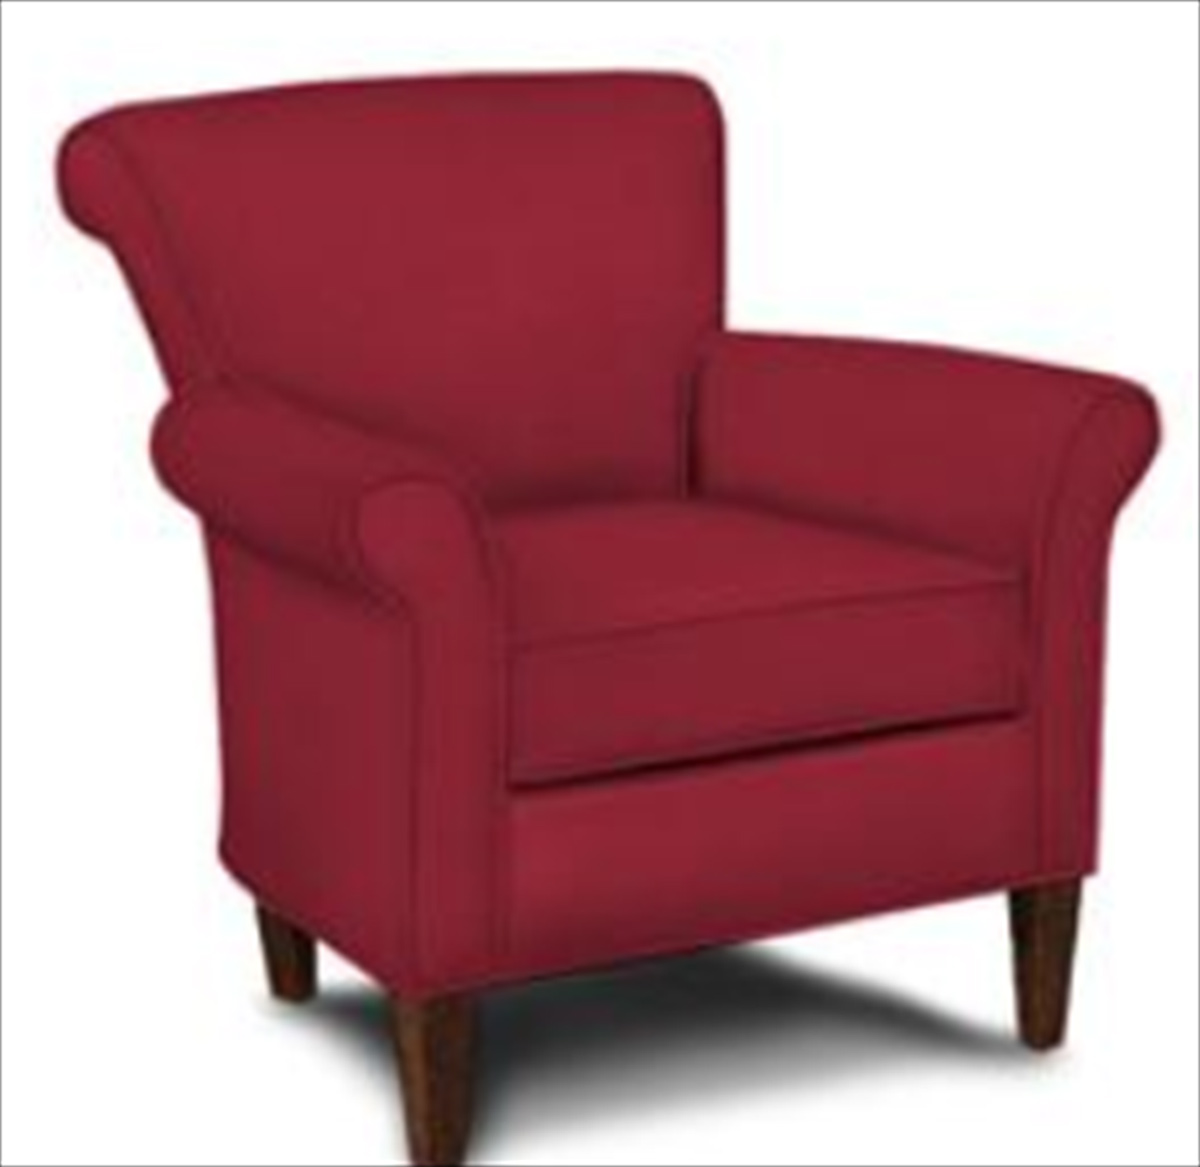 Klaussner Louise Chair - Willow Blaze red